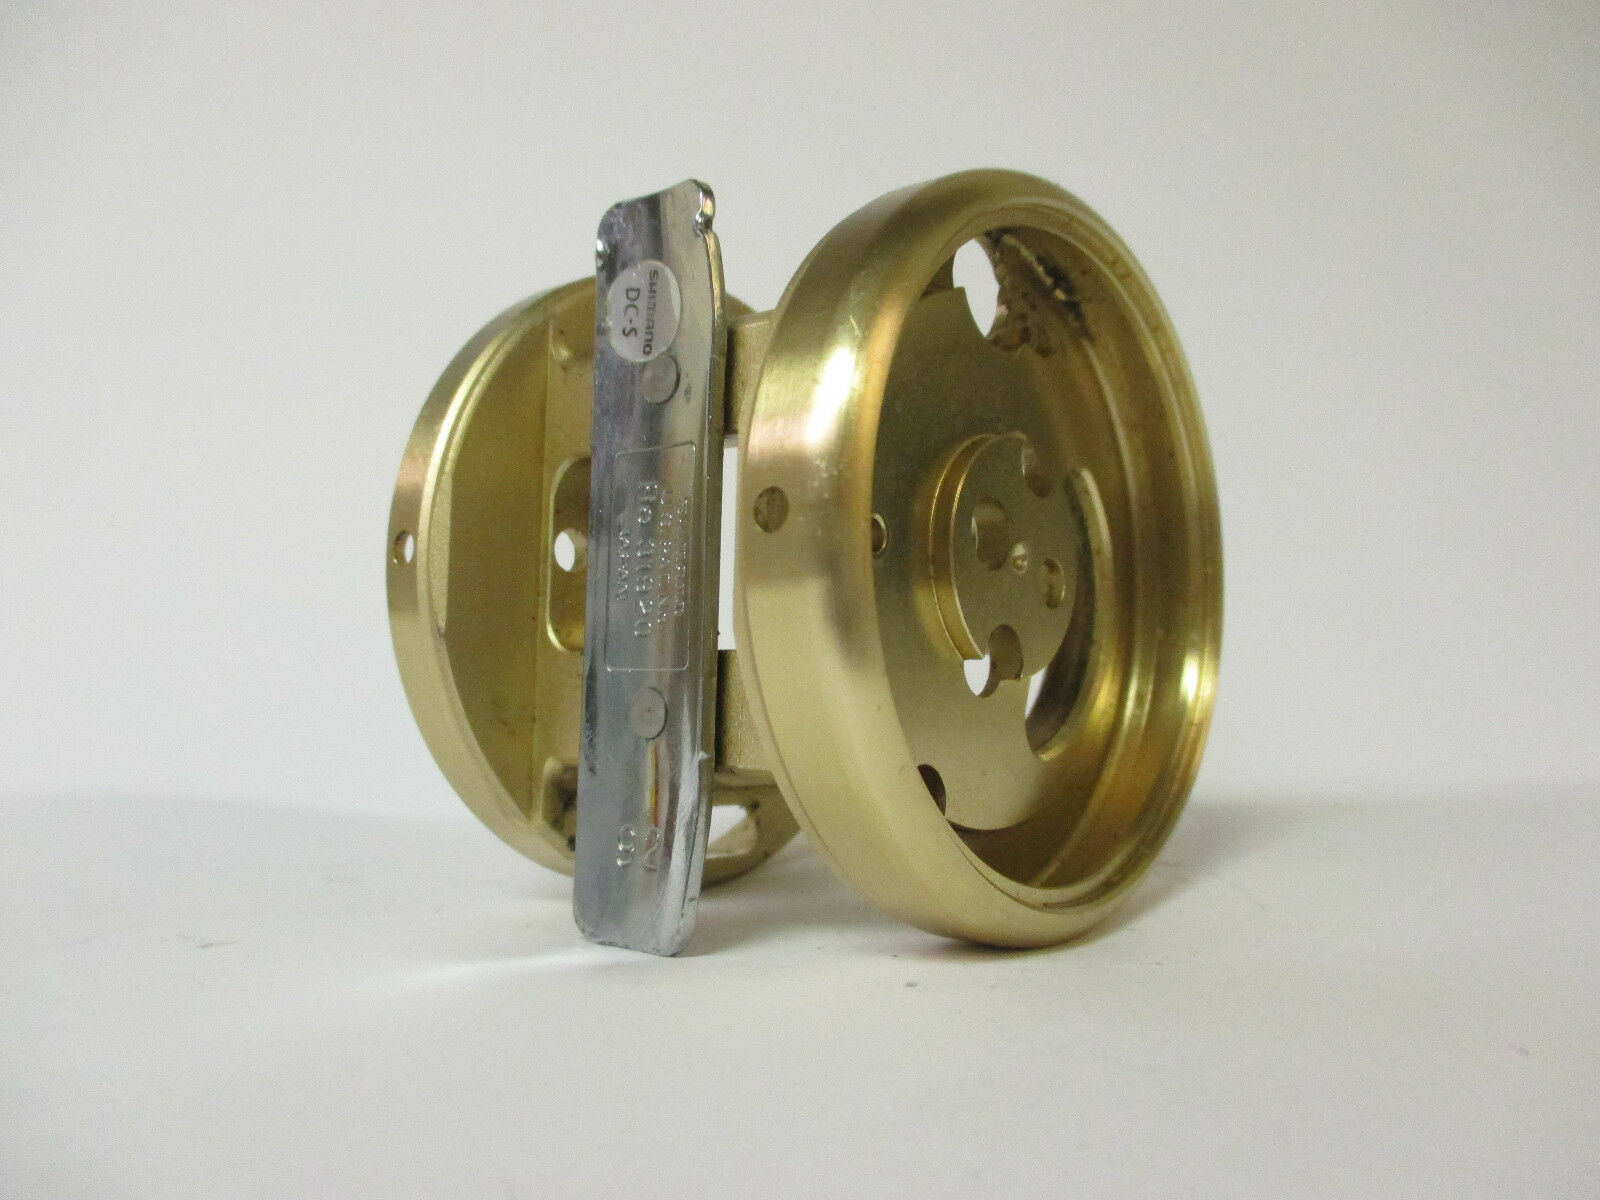 USED SHIMANO REEL PART Calcutta 200B Baitcasting Reel - Frame  A